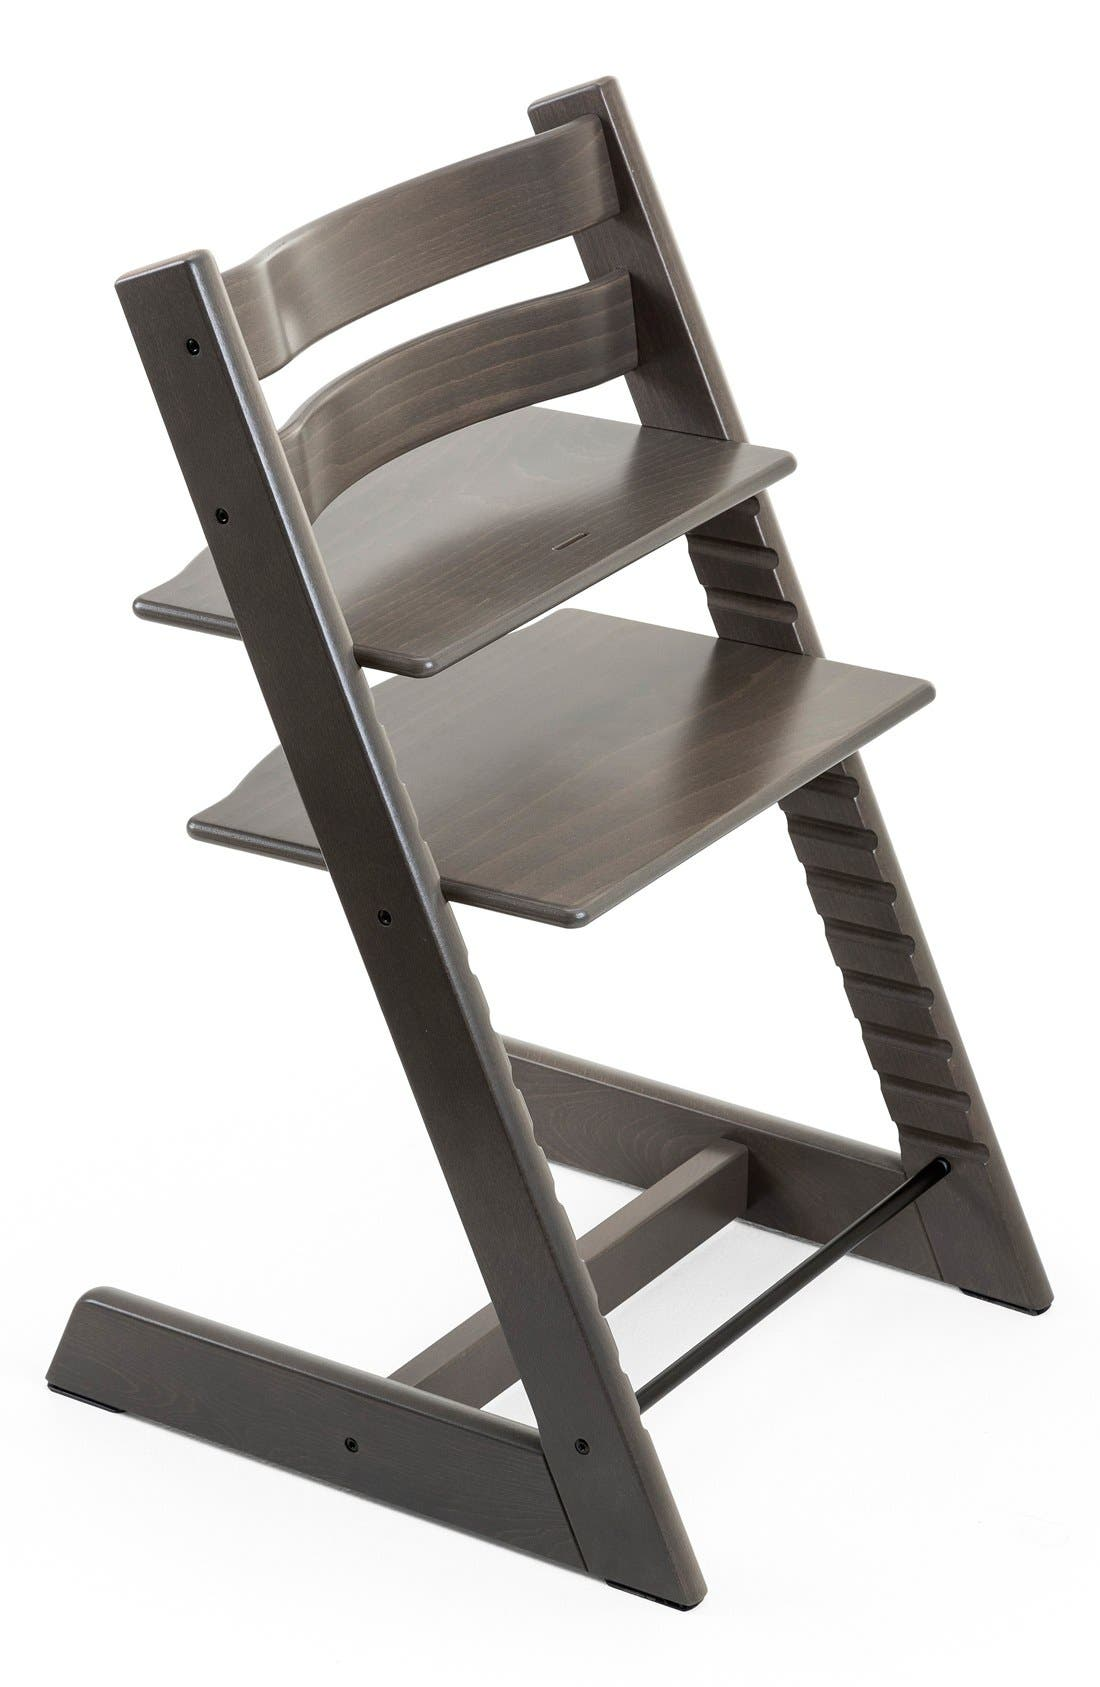 Alternate Image 1 Selected - Stokke 'Tripp Trapp®' Highchair